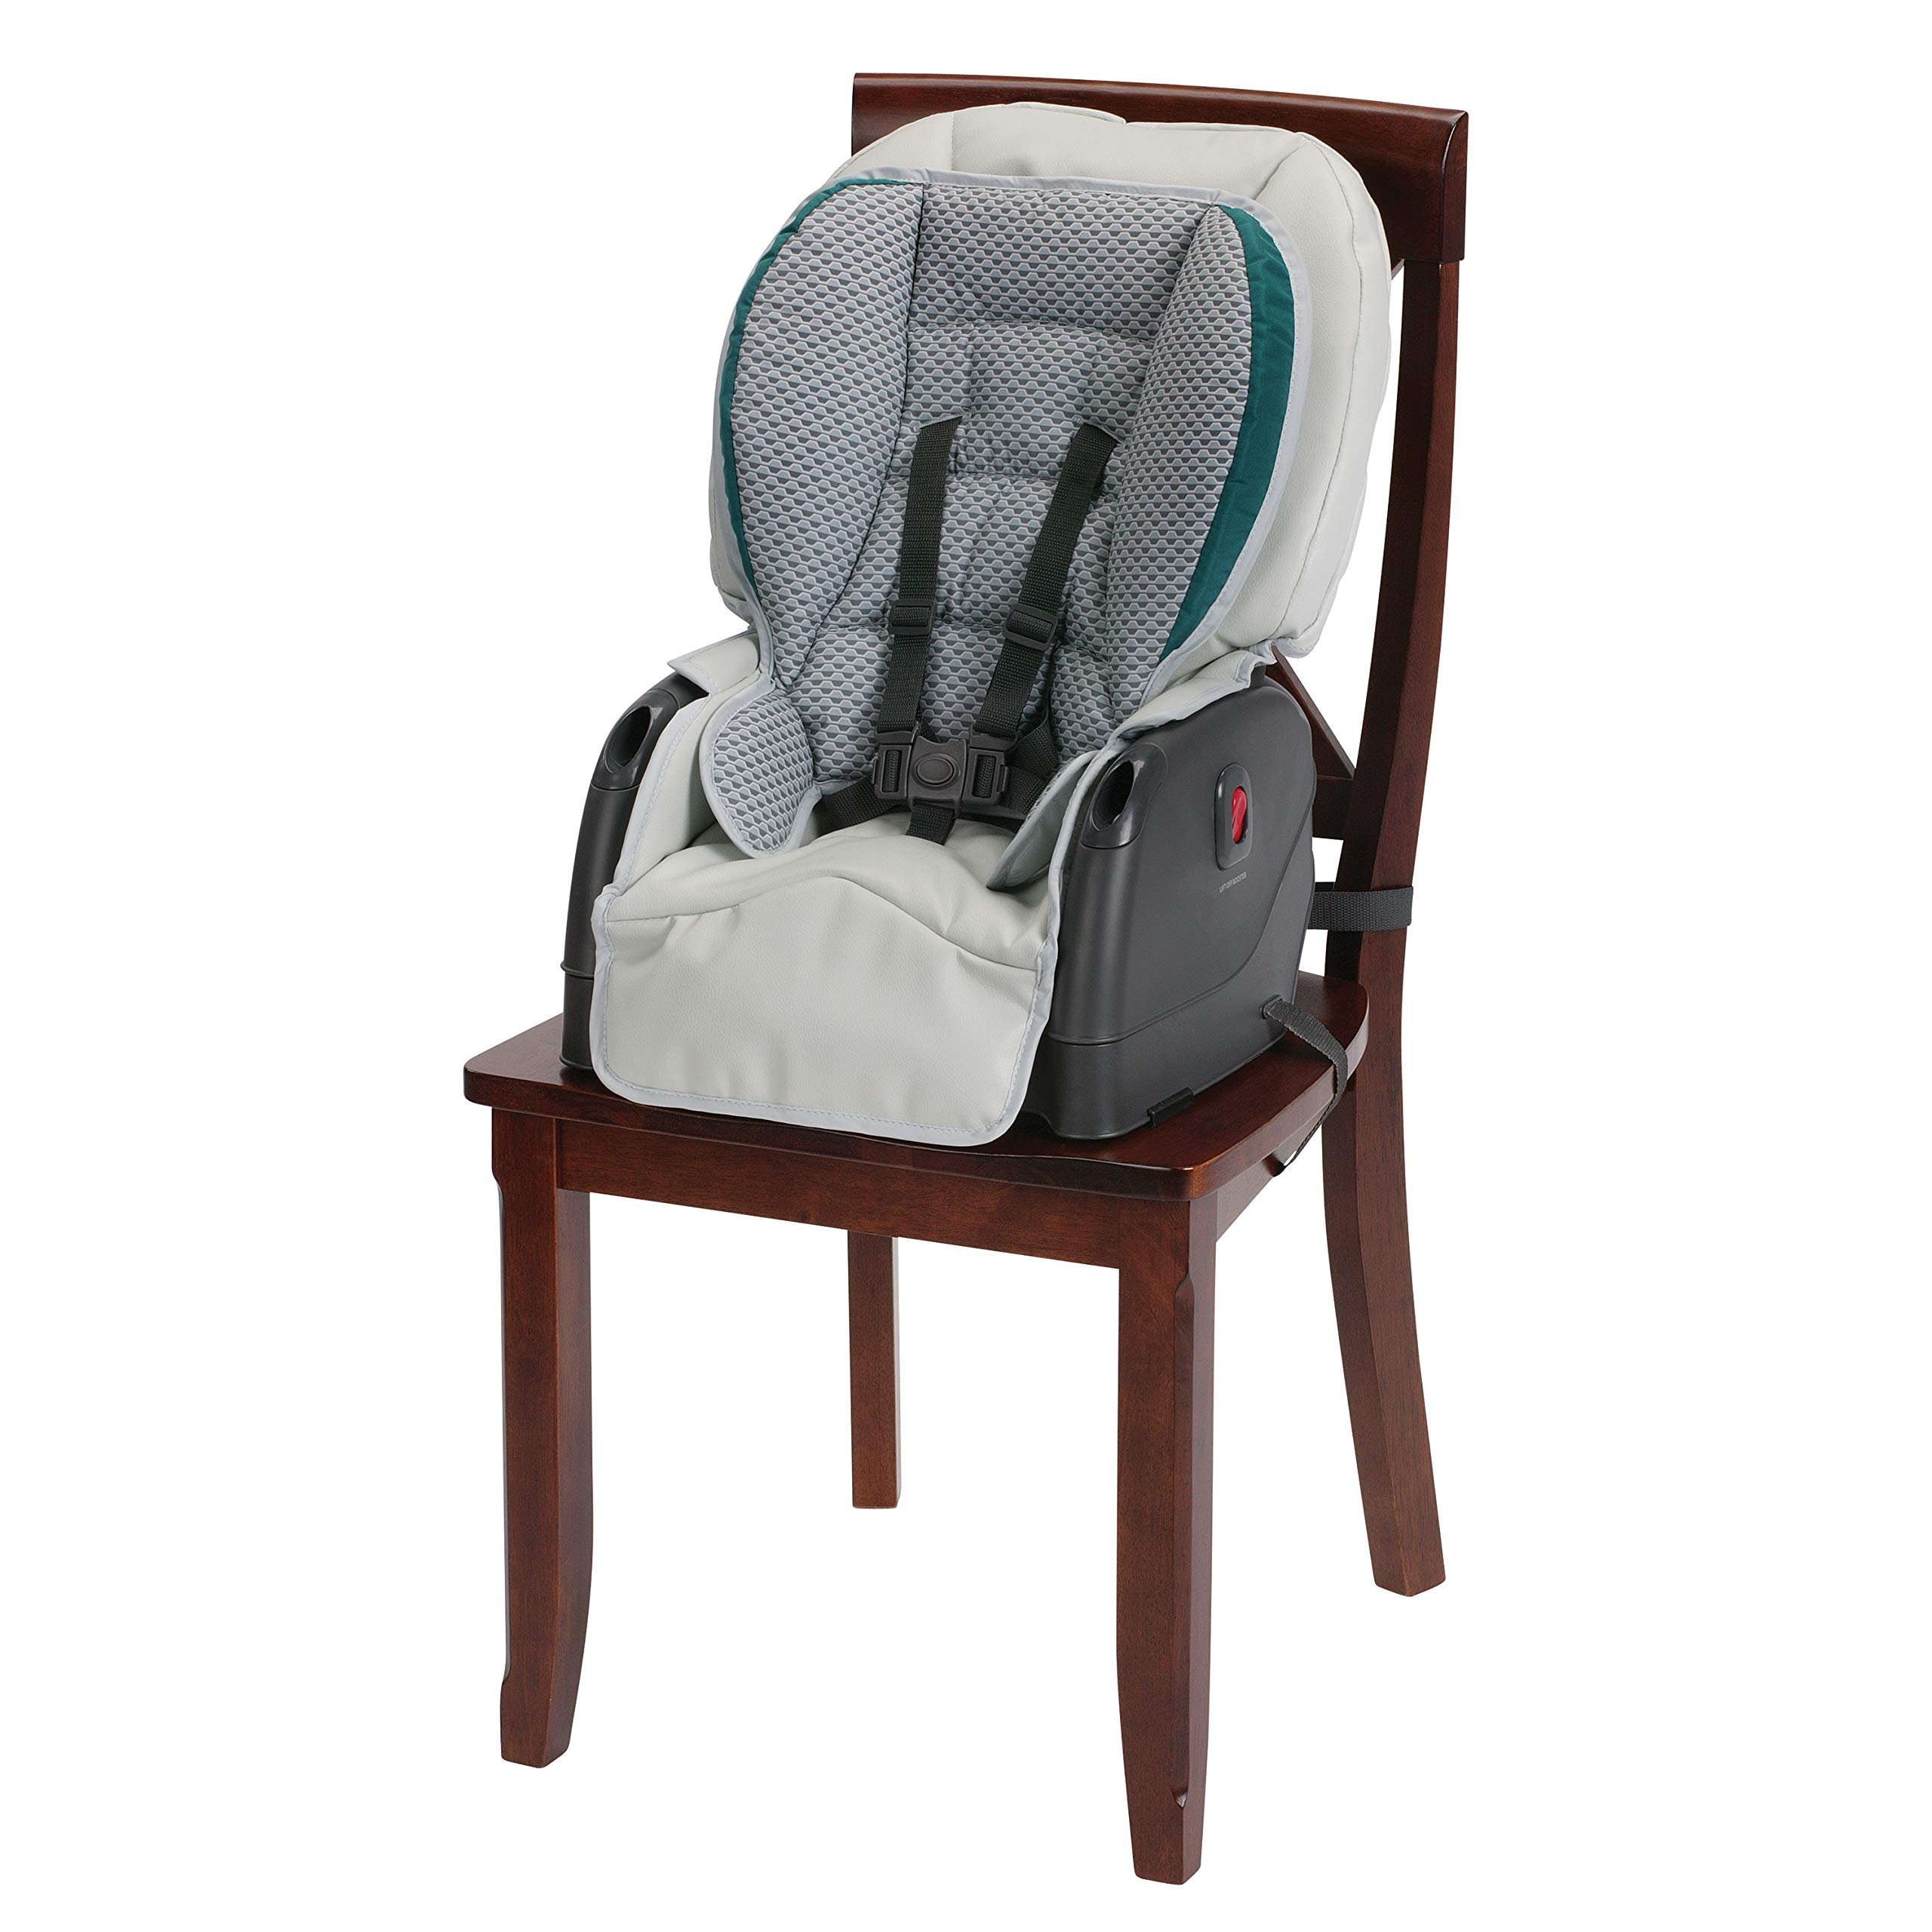 Graco Blossom 6-in-1 Convertible Highchair, Sapphire by Graco (Image #5)